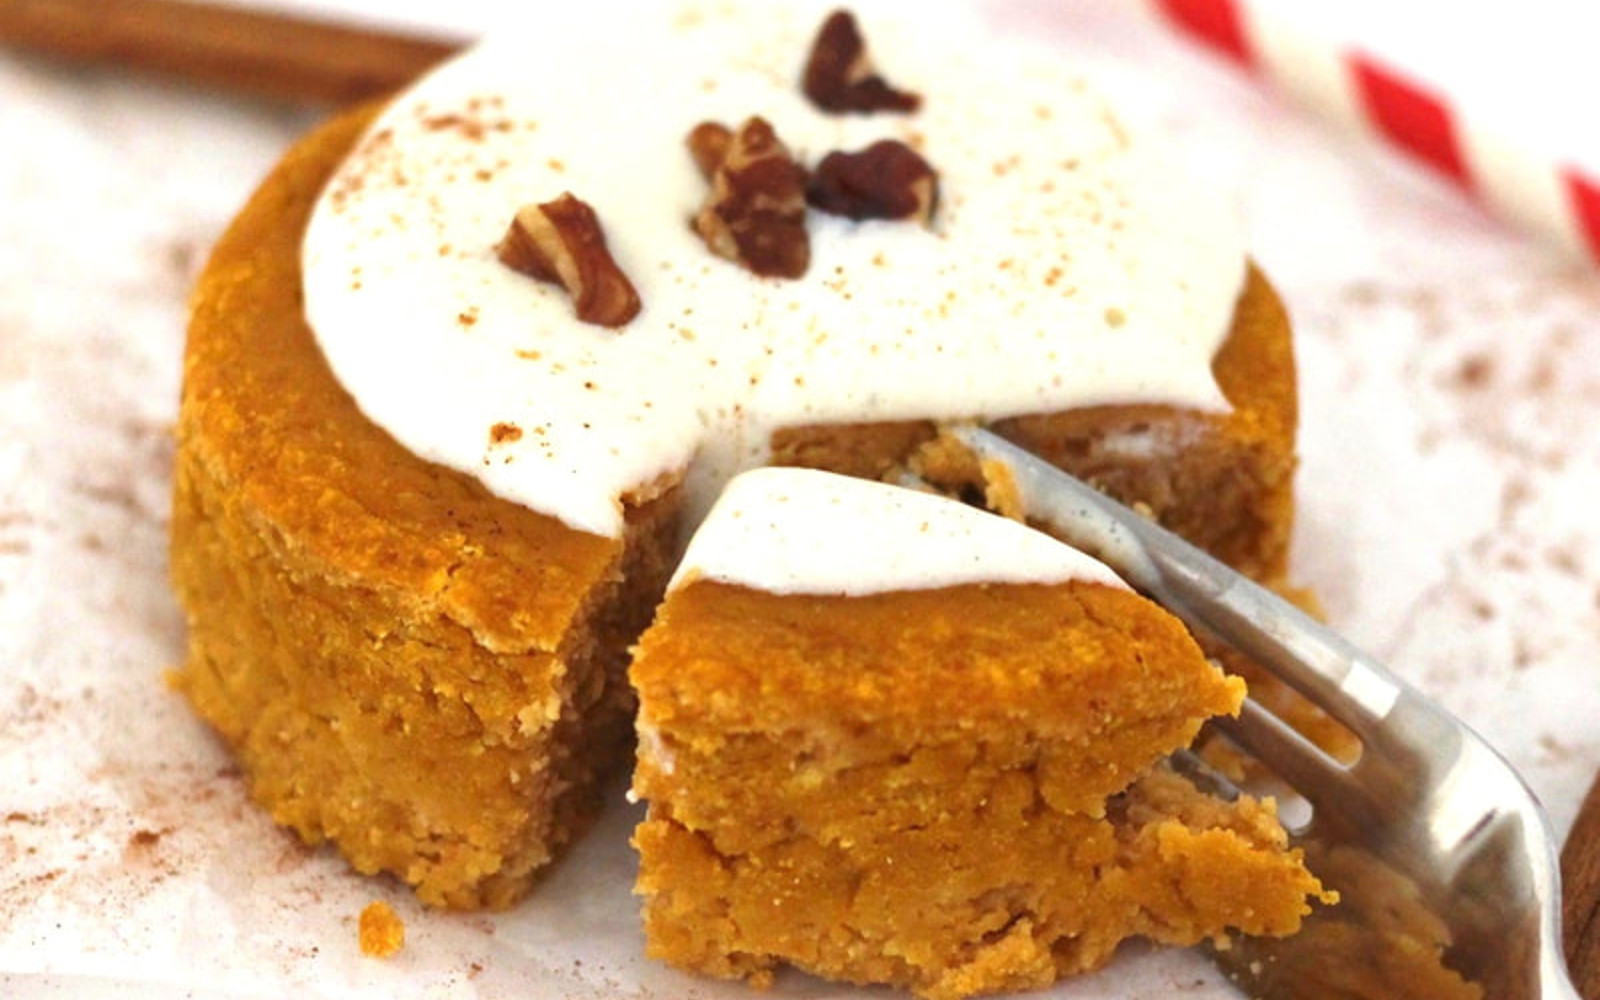 Vegan Gluten-Free Oil-free Pumpkin Spice Mug Cake with frosting